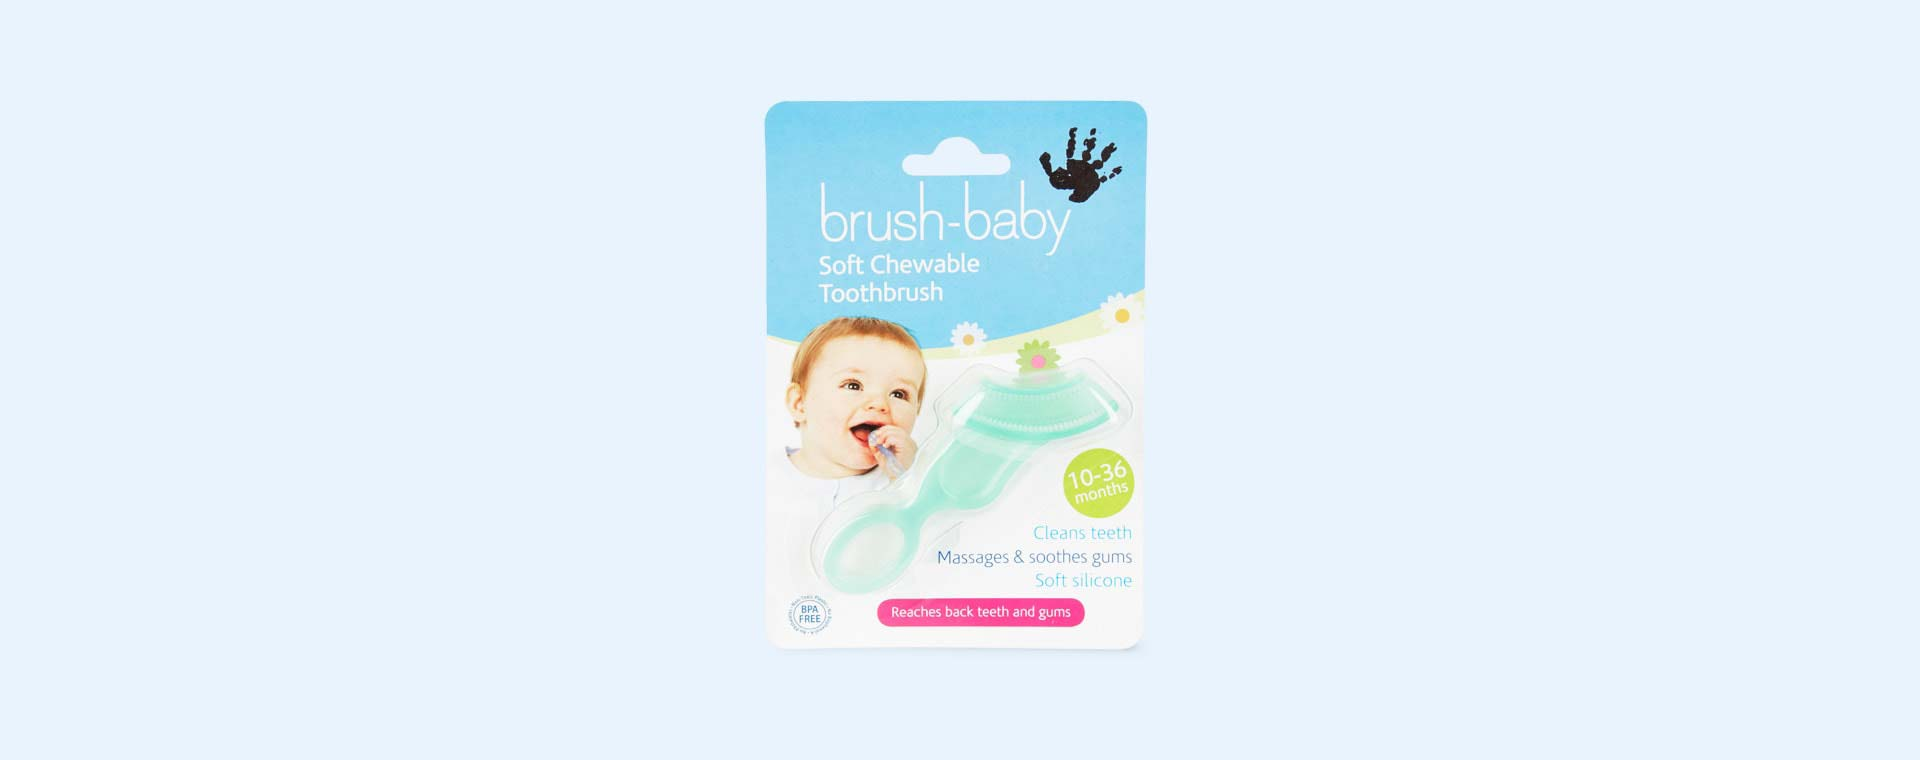 Blue Brushbaby Soft Chewable Toothbrush